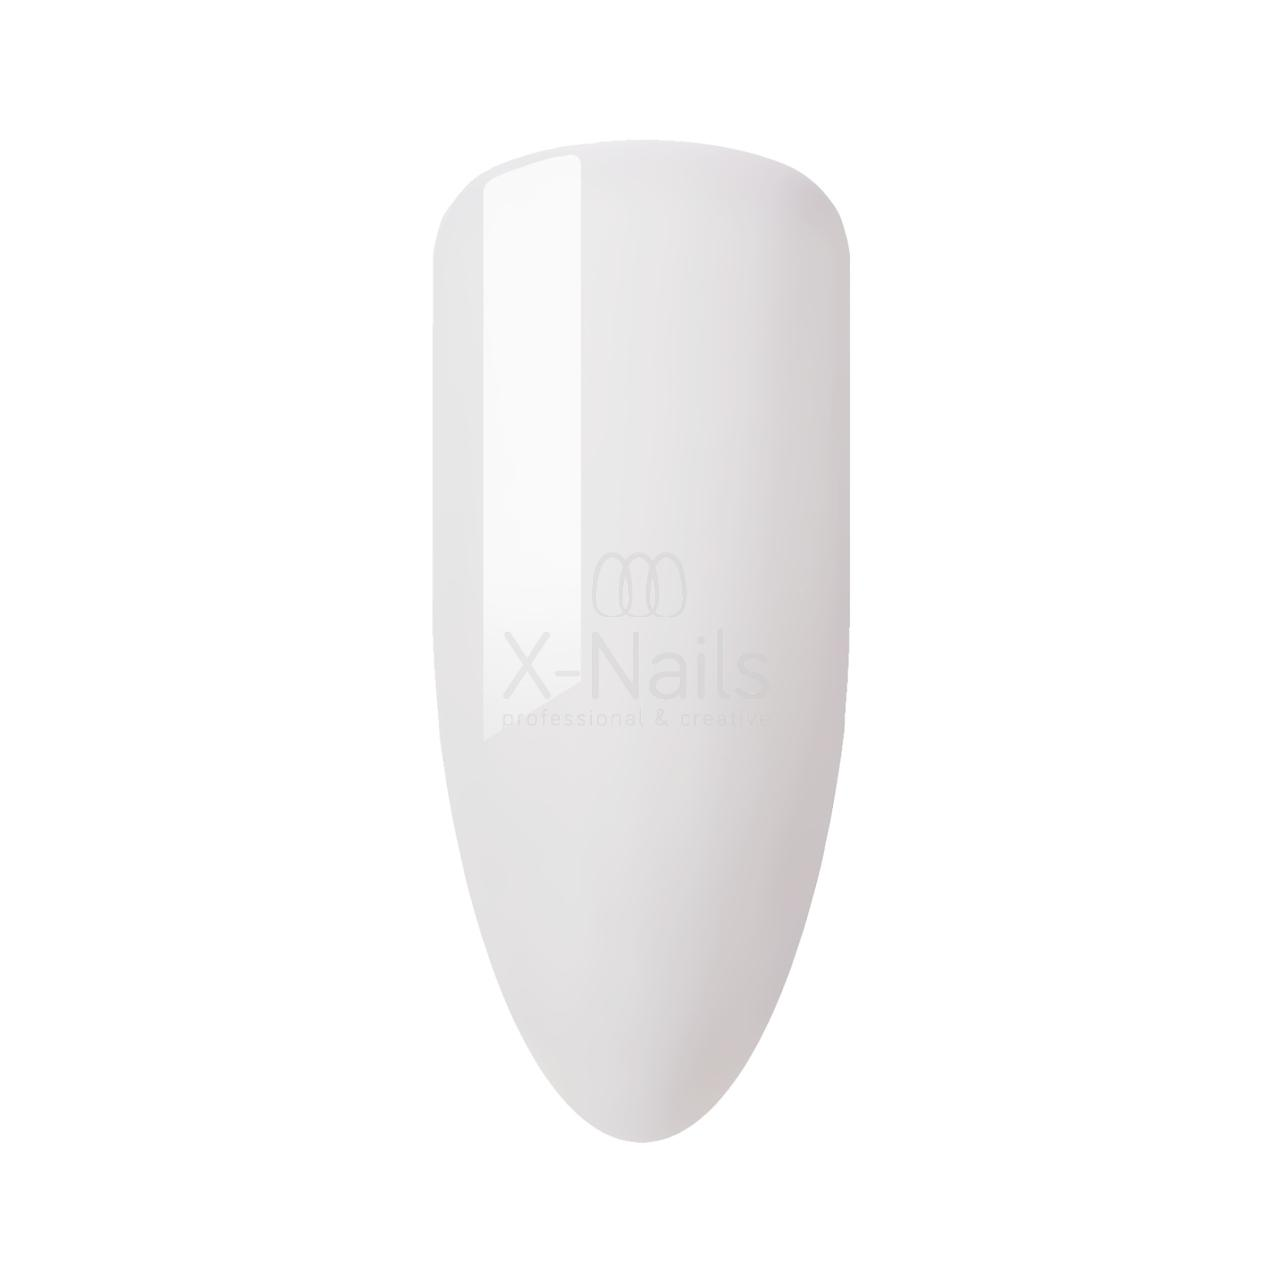 X-NAILS Bílý UV gel Classic Line, 15 ml - WHITE 4